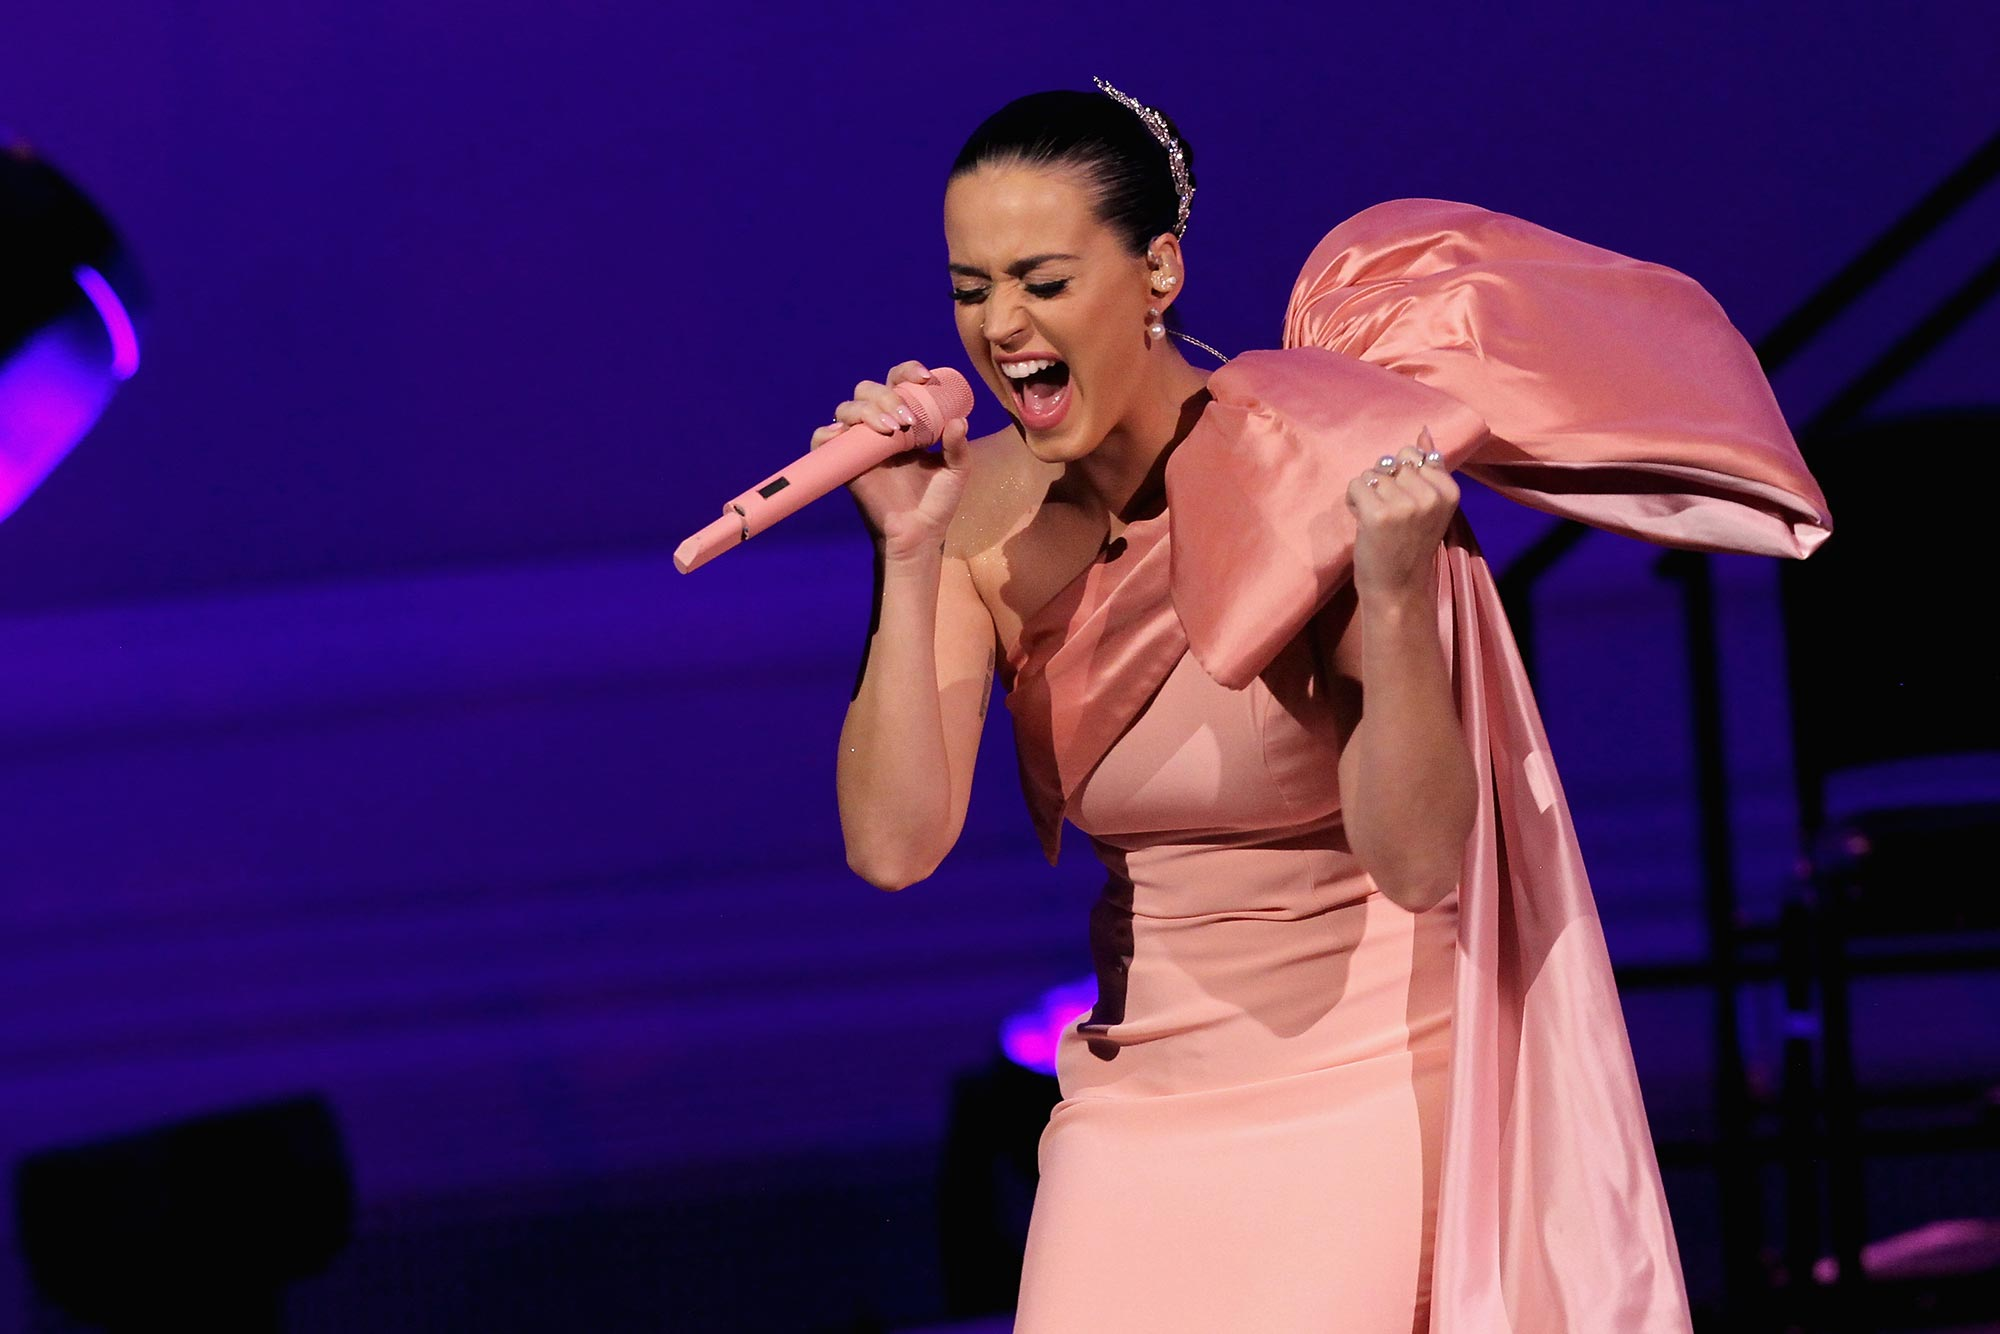 Katy Perry Performs at a David Lynch Foundation Event